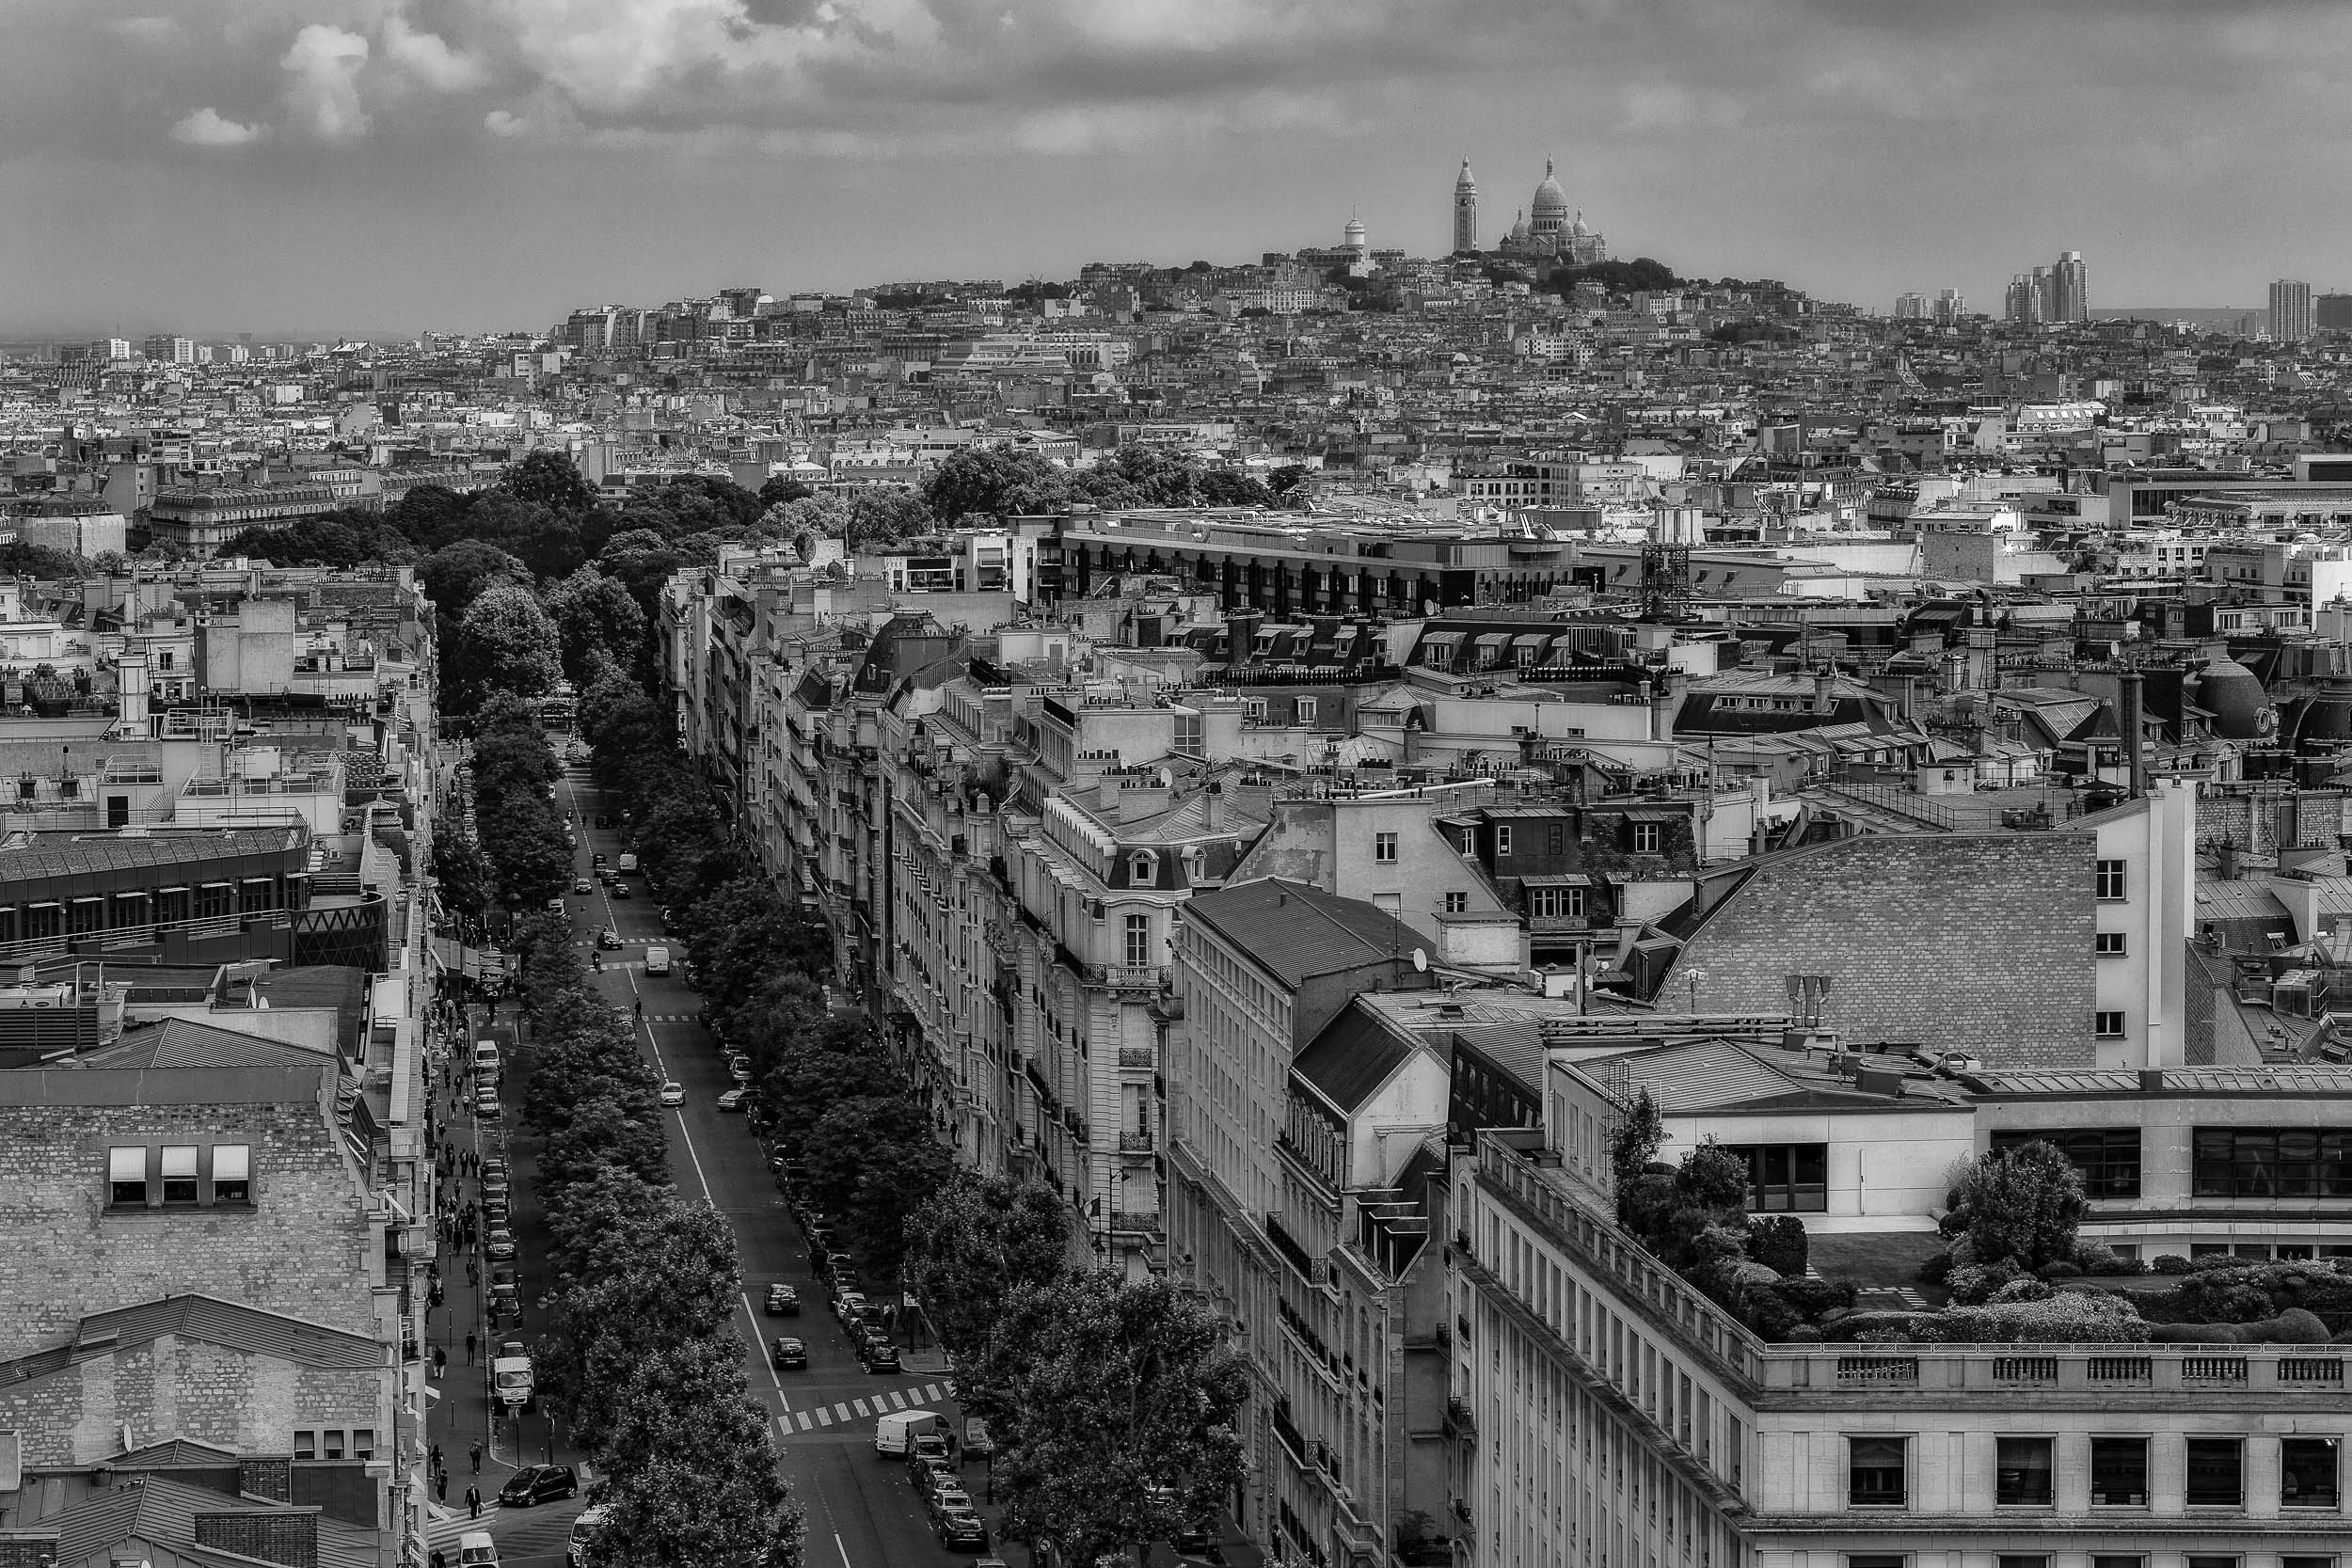 A    rooftop view    towards the    Sacre Coeur Basilica    on    Montmarte    in    Paris   .